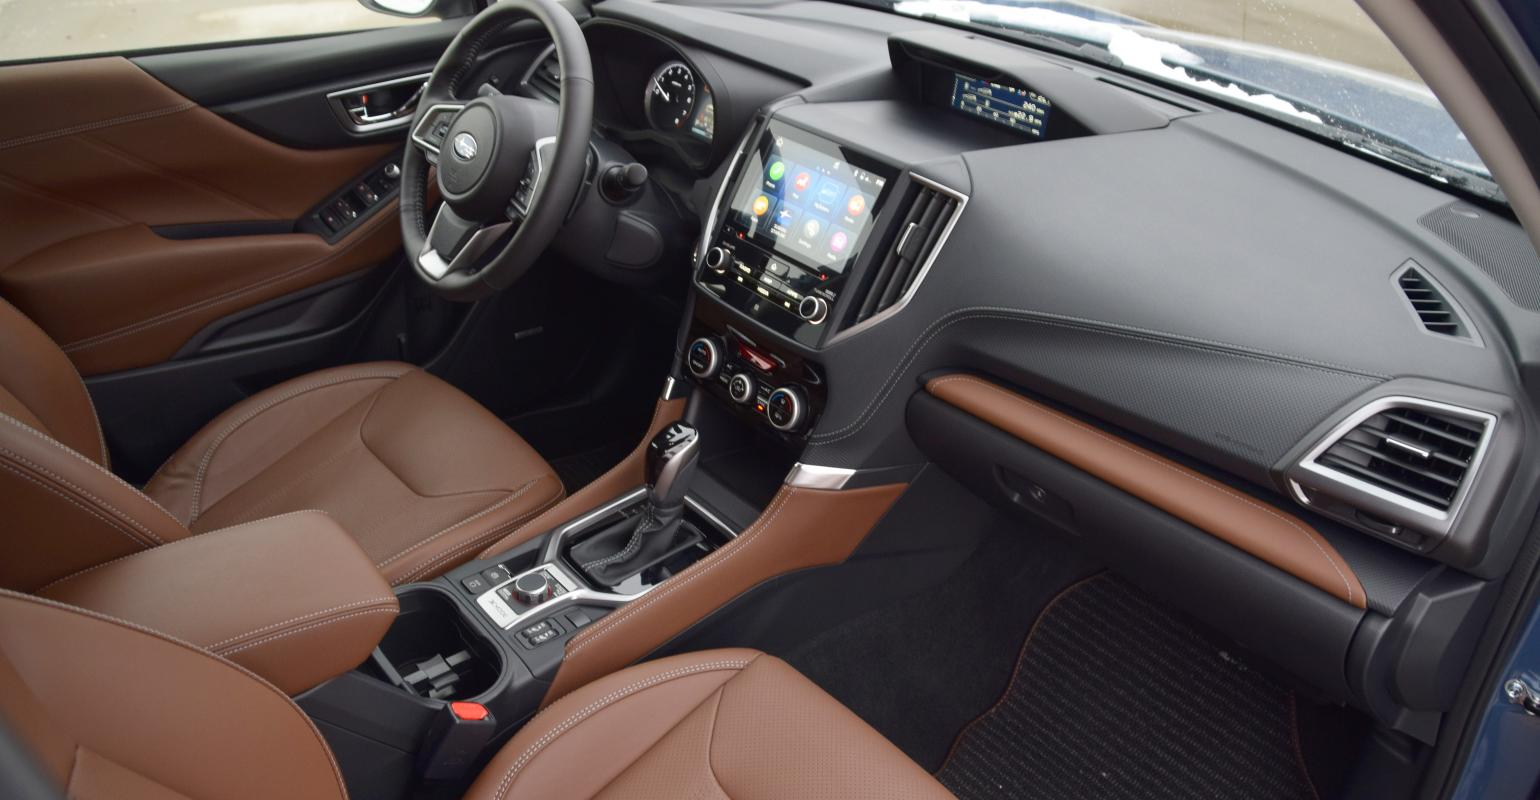 2019 Wards 10 Best Interiors Quick Hits Wardsauto